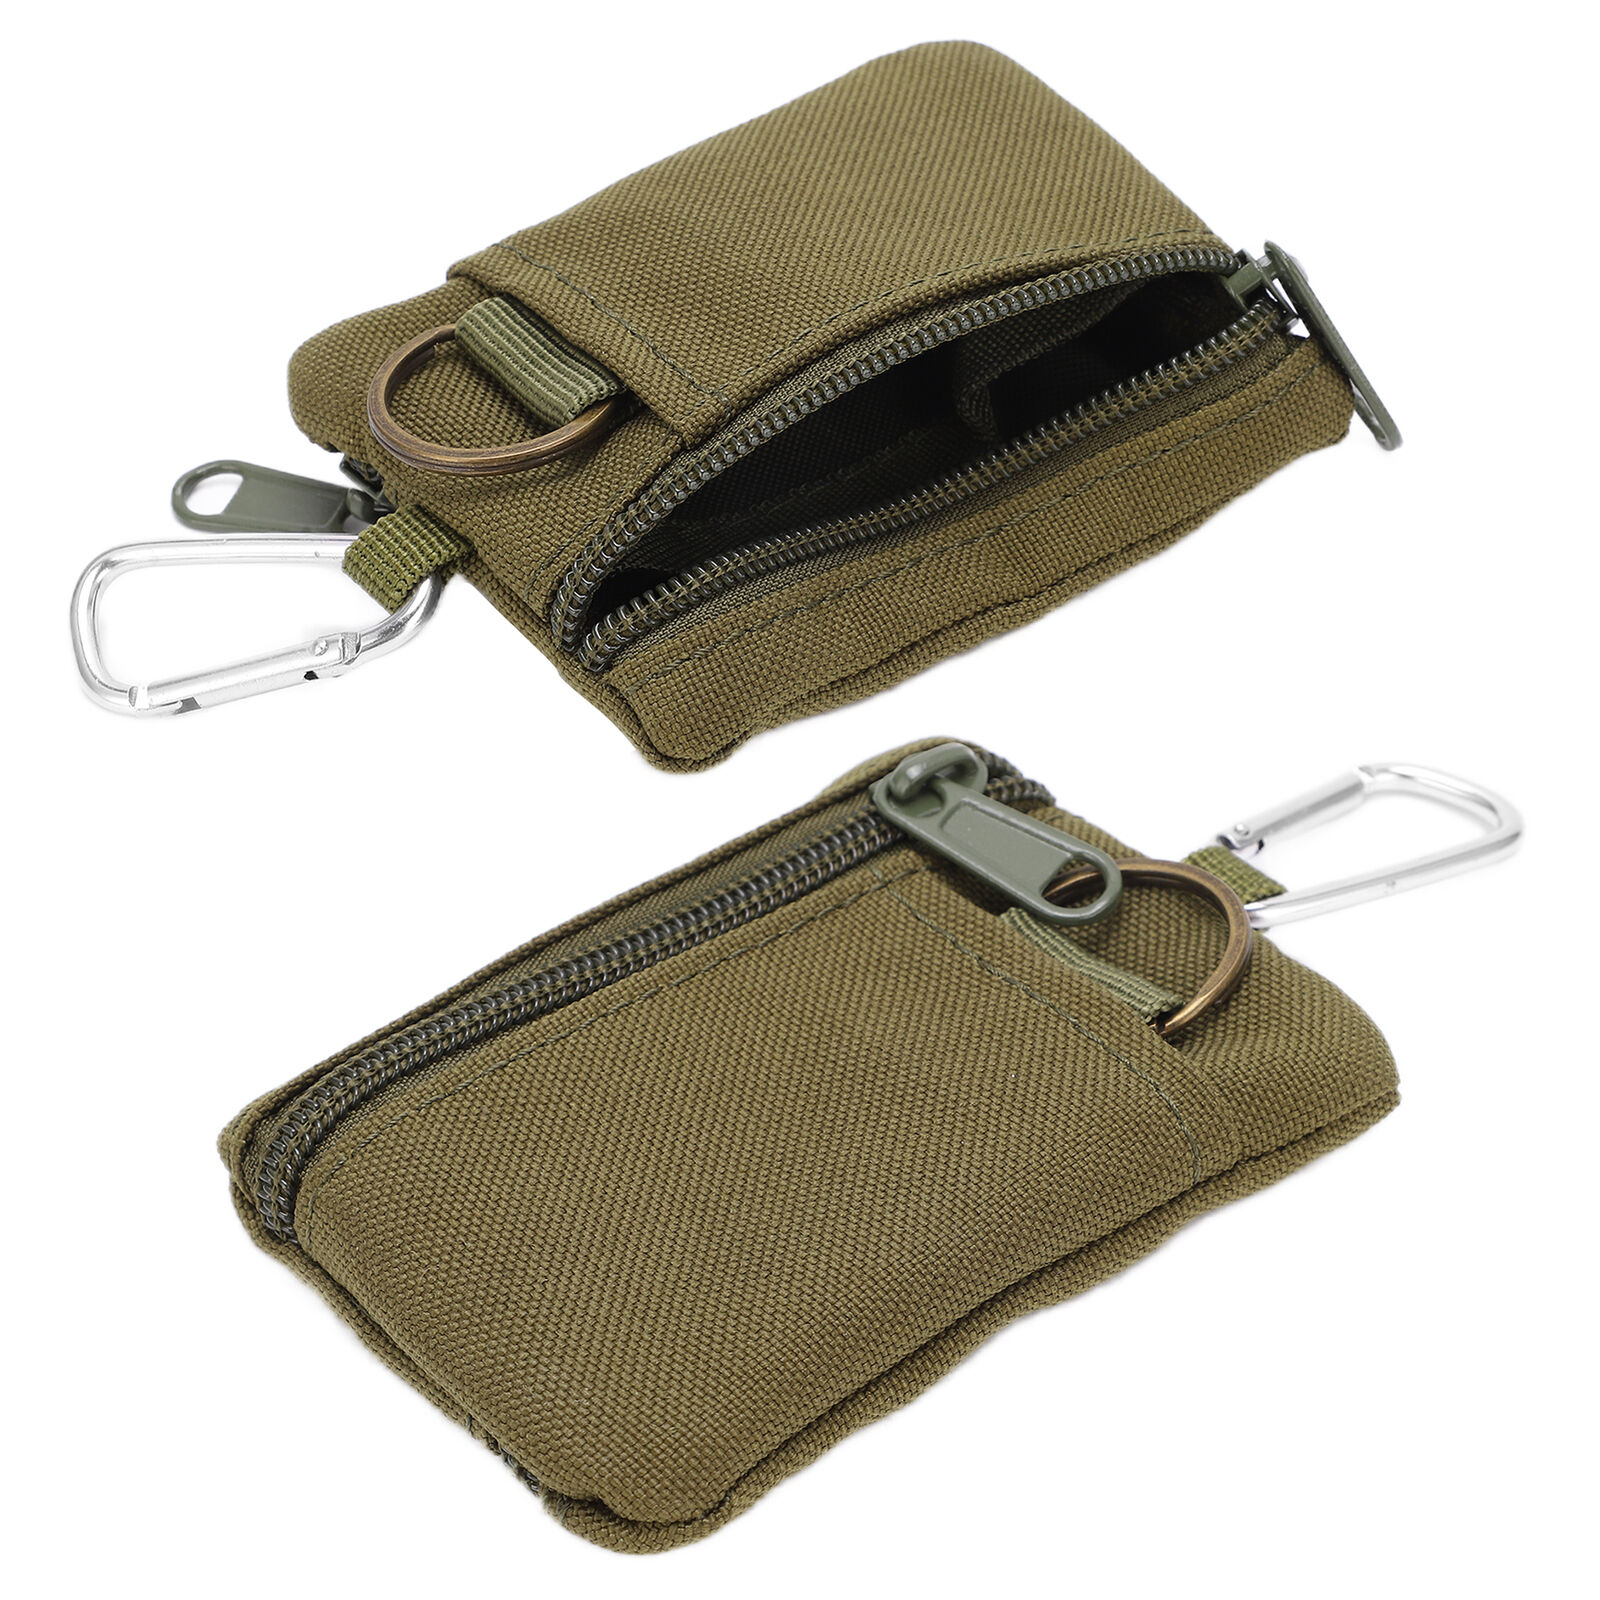 Outdoor EDC Molle Pouch Wallet Key Card Case Coin Purse With Carabiner(Green)X